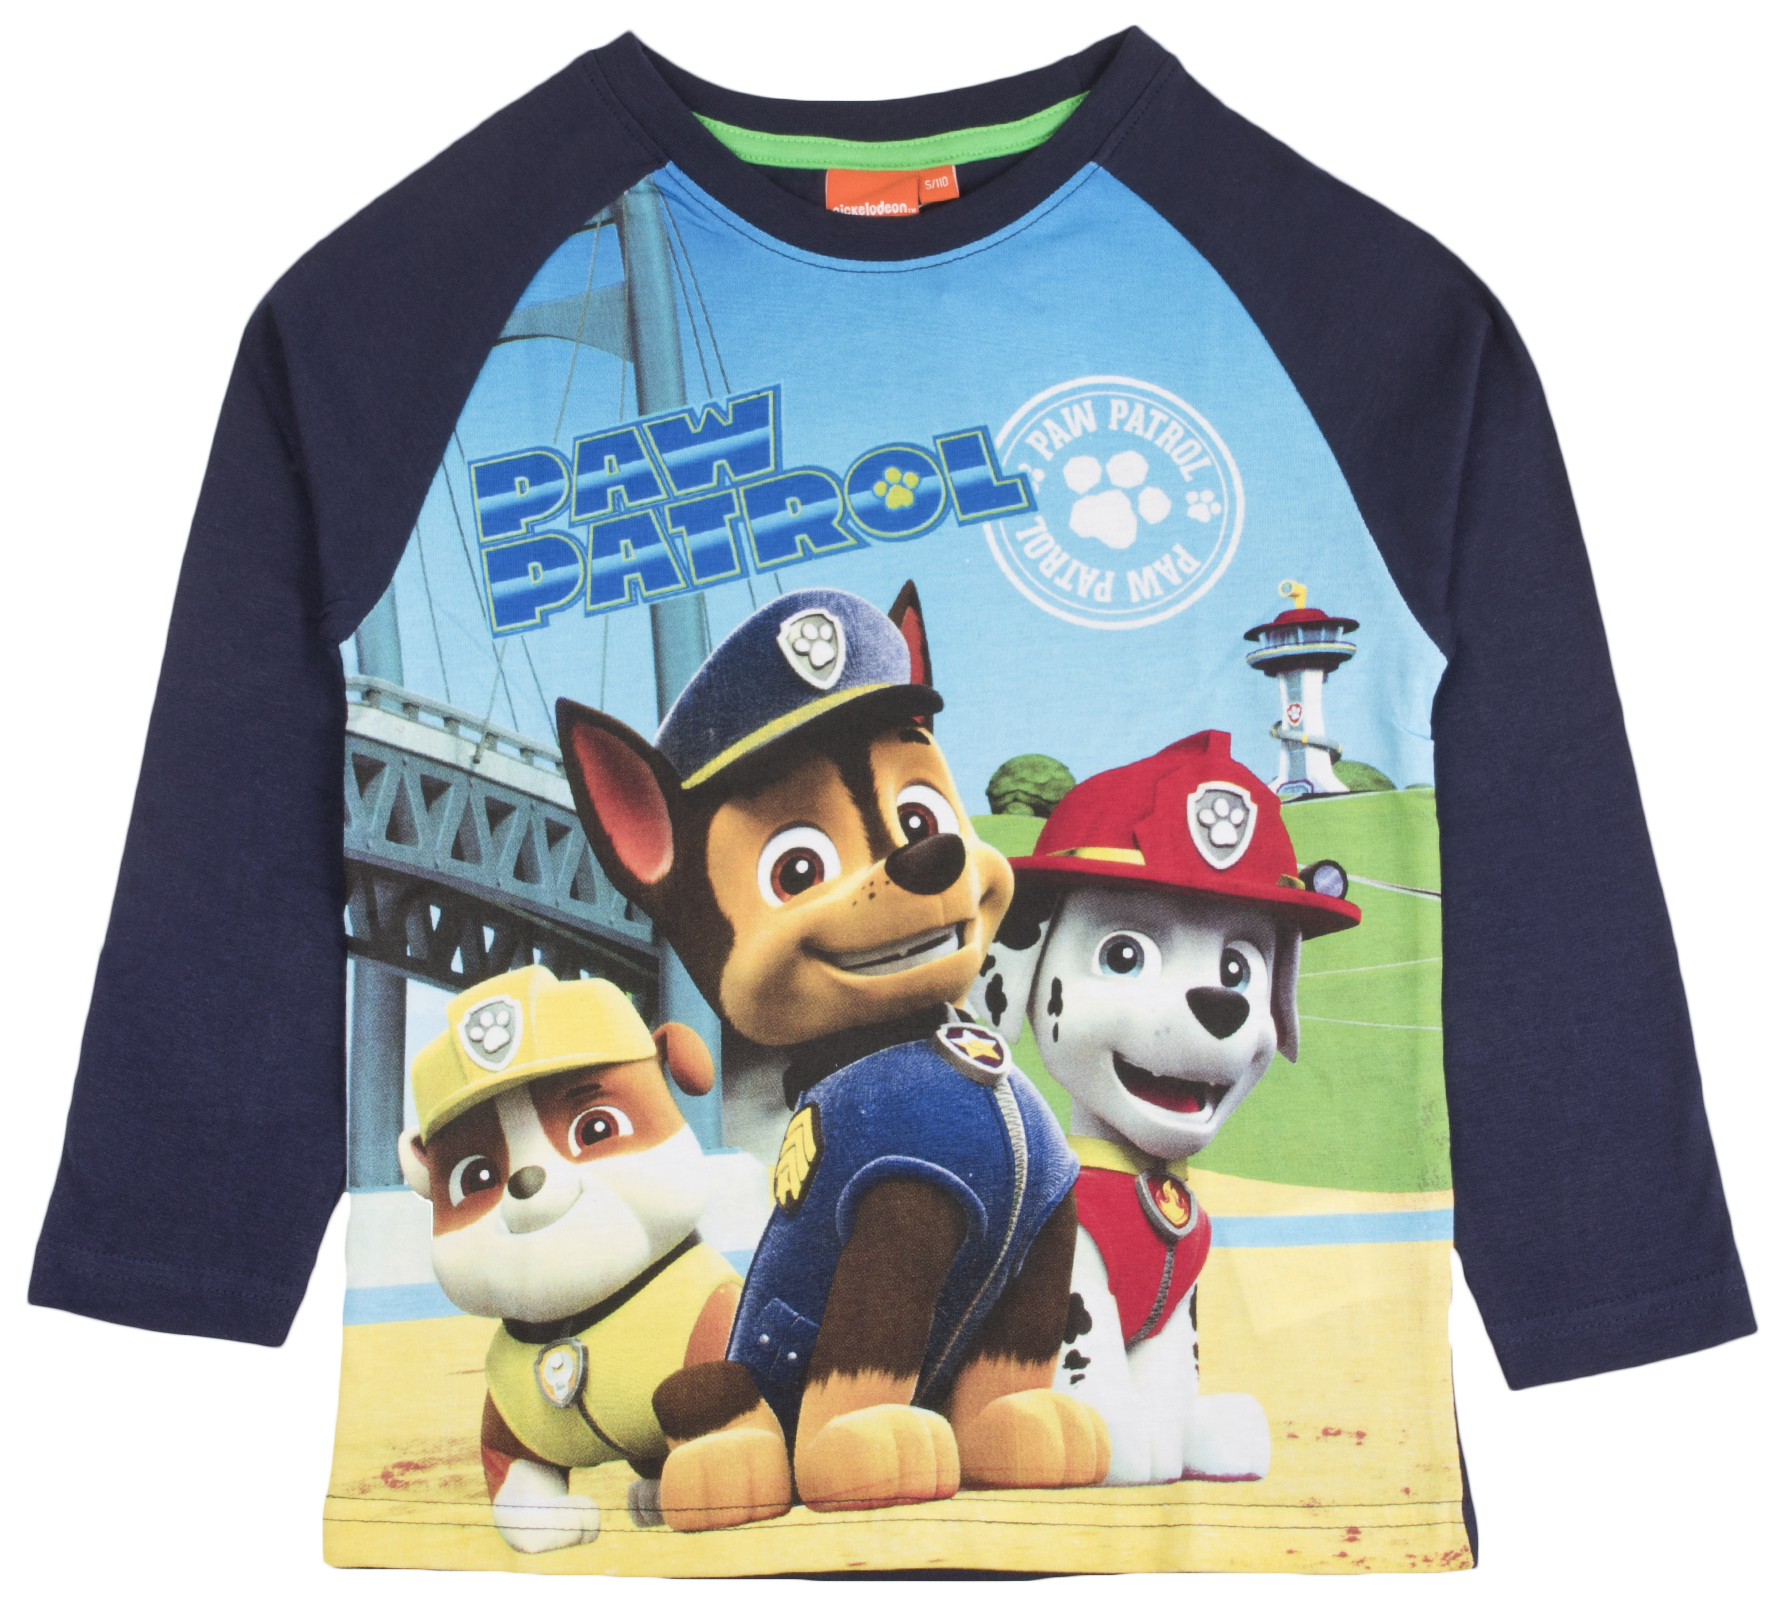 Details about Official Paw Patrol Girls Boys Kids Long Sleeve Top Character  Chase Skye T-Shirt